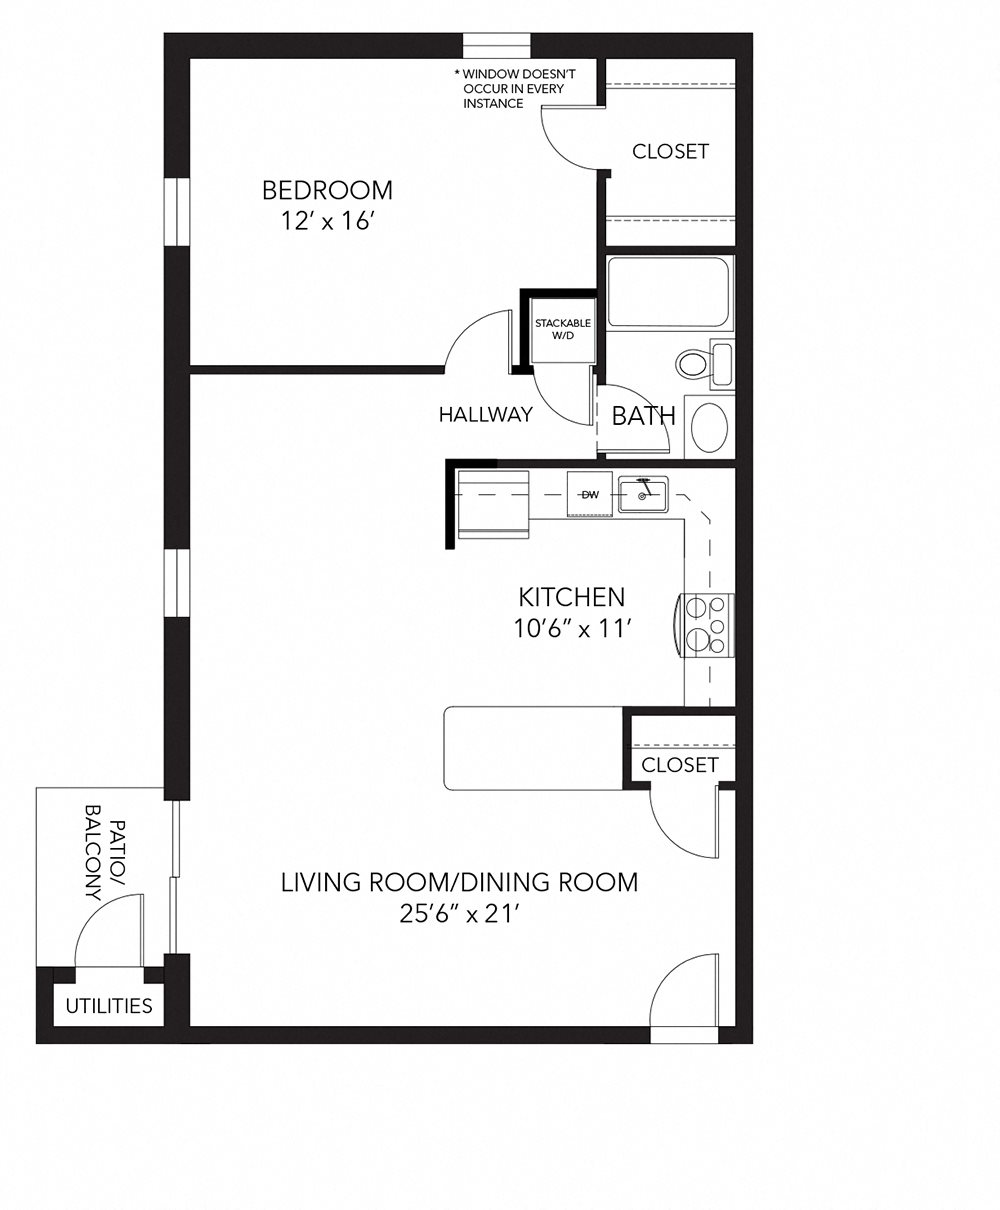 Banbury floor plan at Corner Park apartments, West Chester, PA